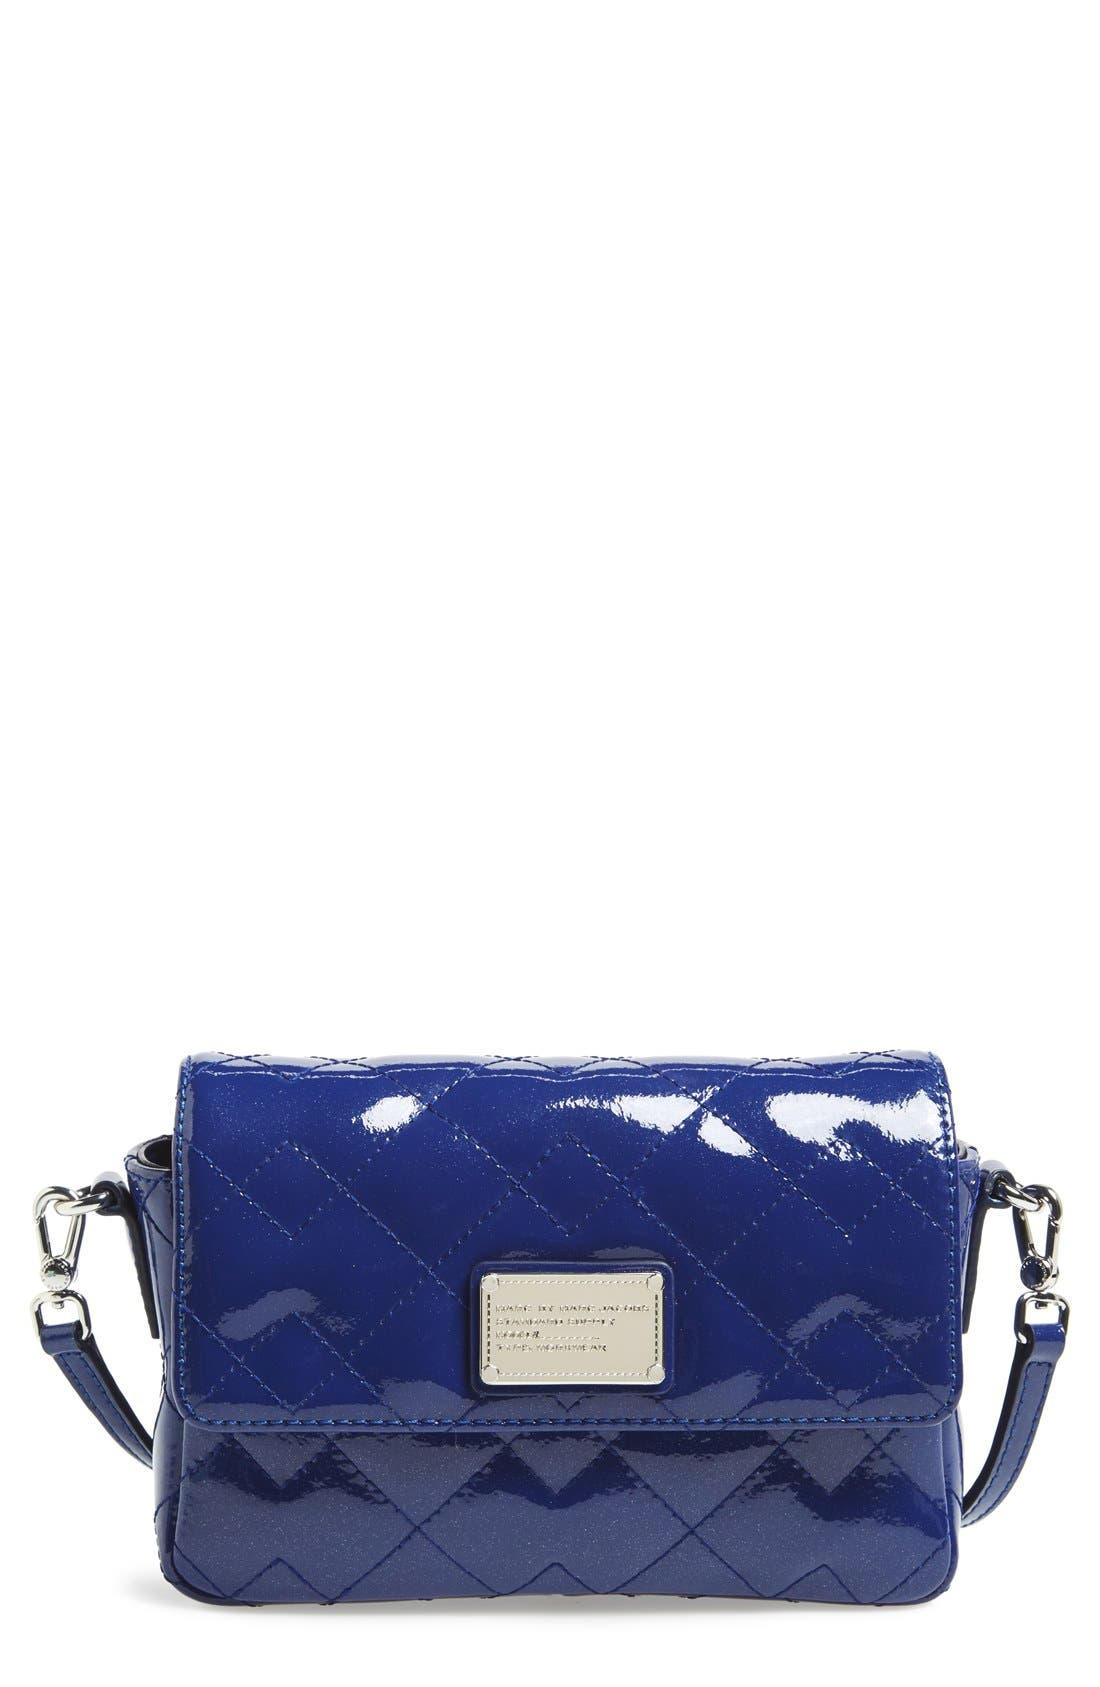 Alternate Image 1 Selected - MARC BY MARC JACOBS 'Nifty Gifty - Julie' Patent Leather Crossbody Bag